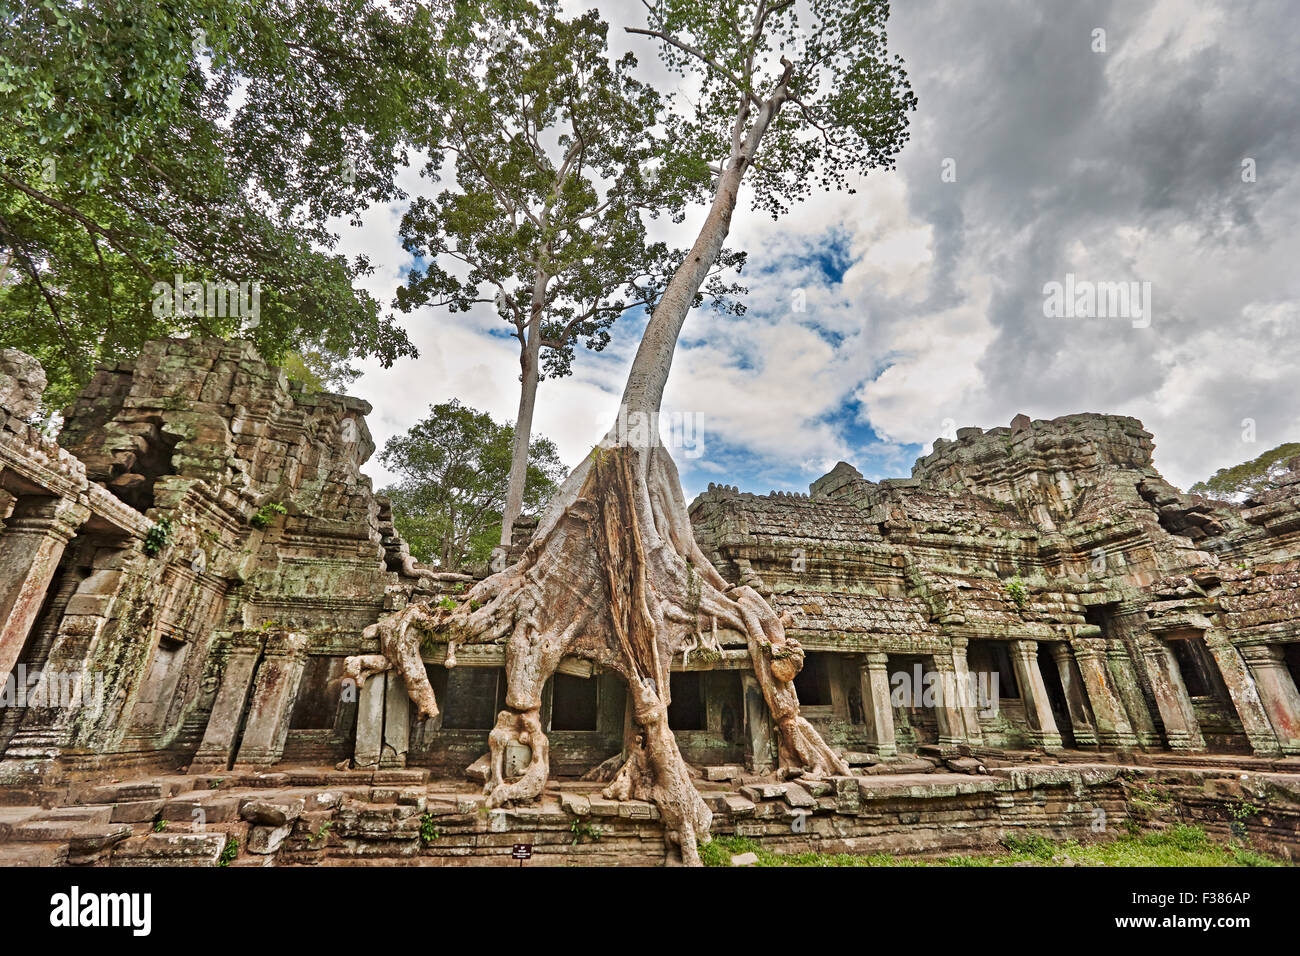 Preah Khan temple. Angkor Archaeological Park, Siem Reap Province, Cambodia. - Stock Image